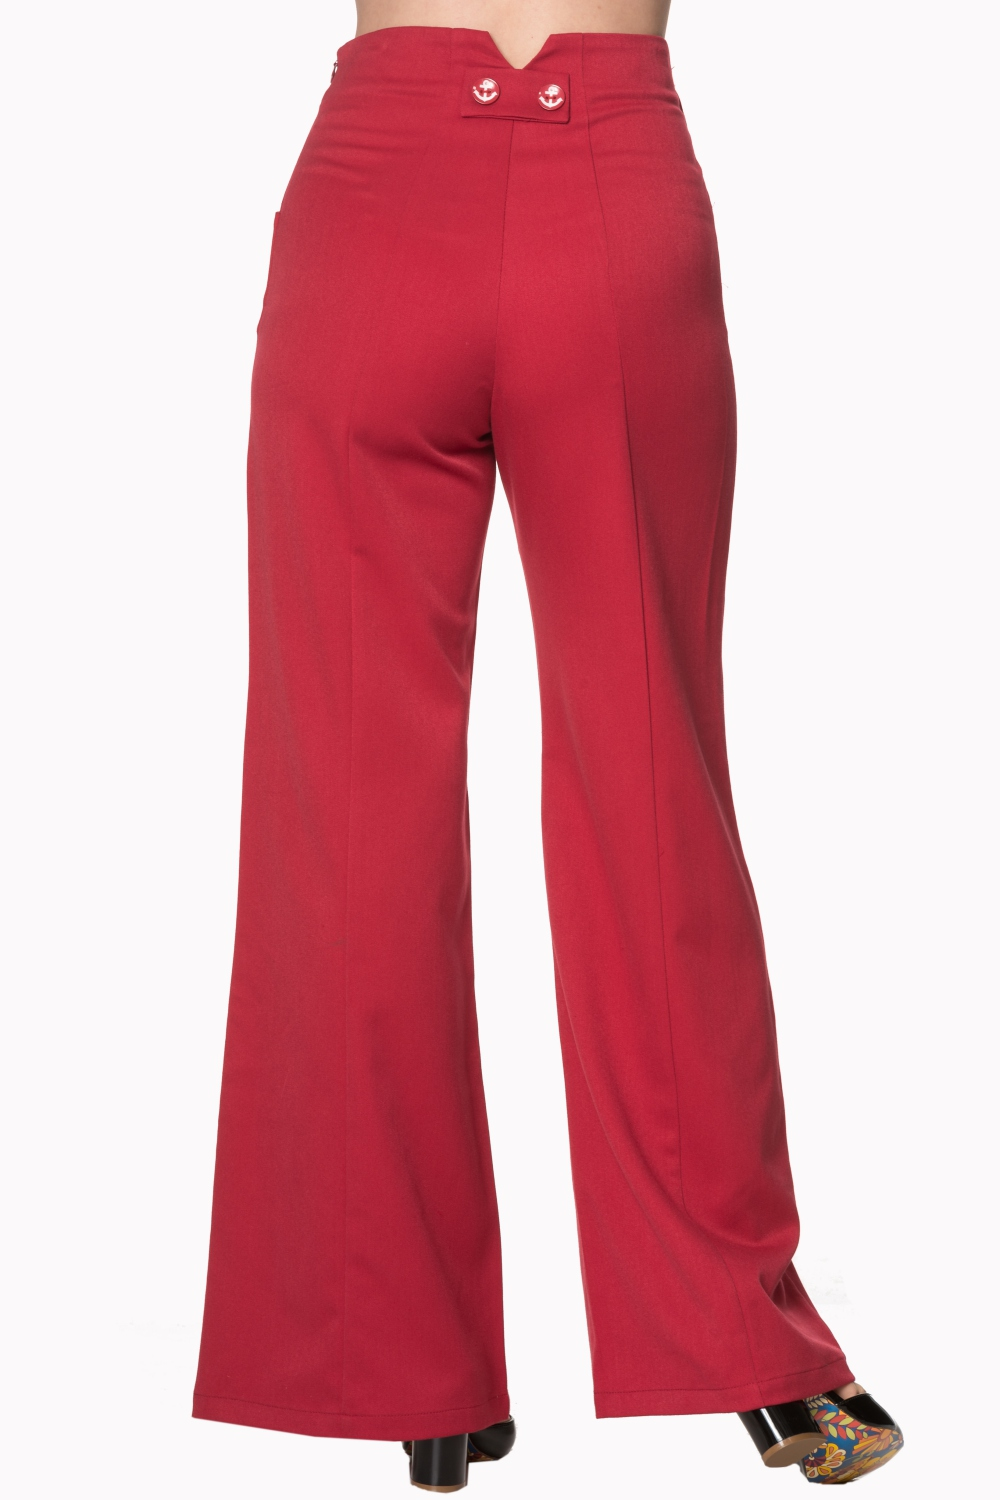 Dancing Days by Banned 40s Stay Awhile Red Trousers